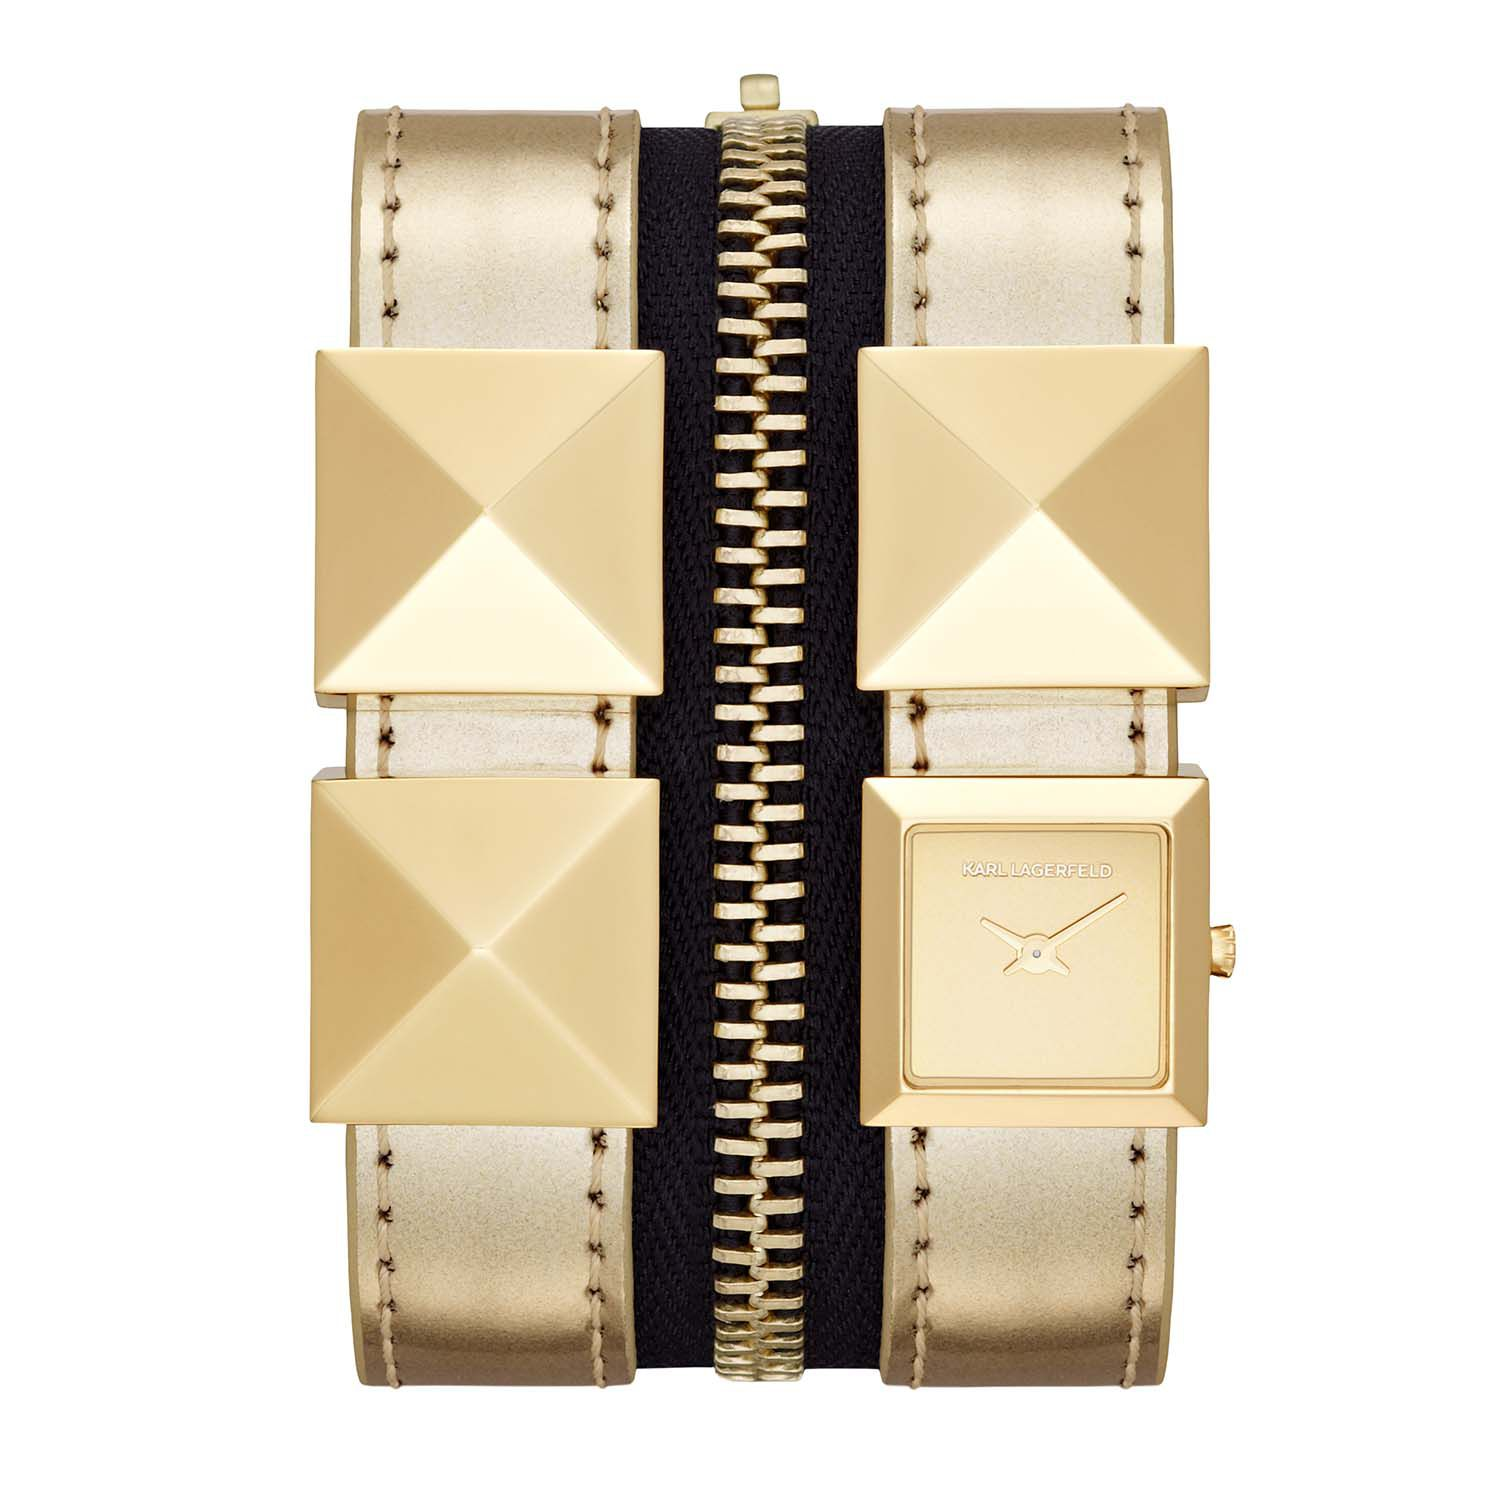 KL2009 EDGE gold leather ladies watch